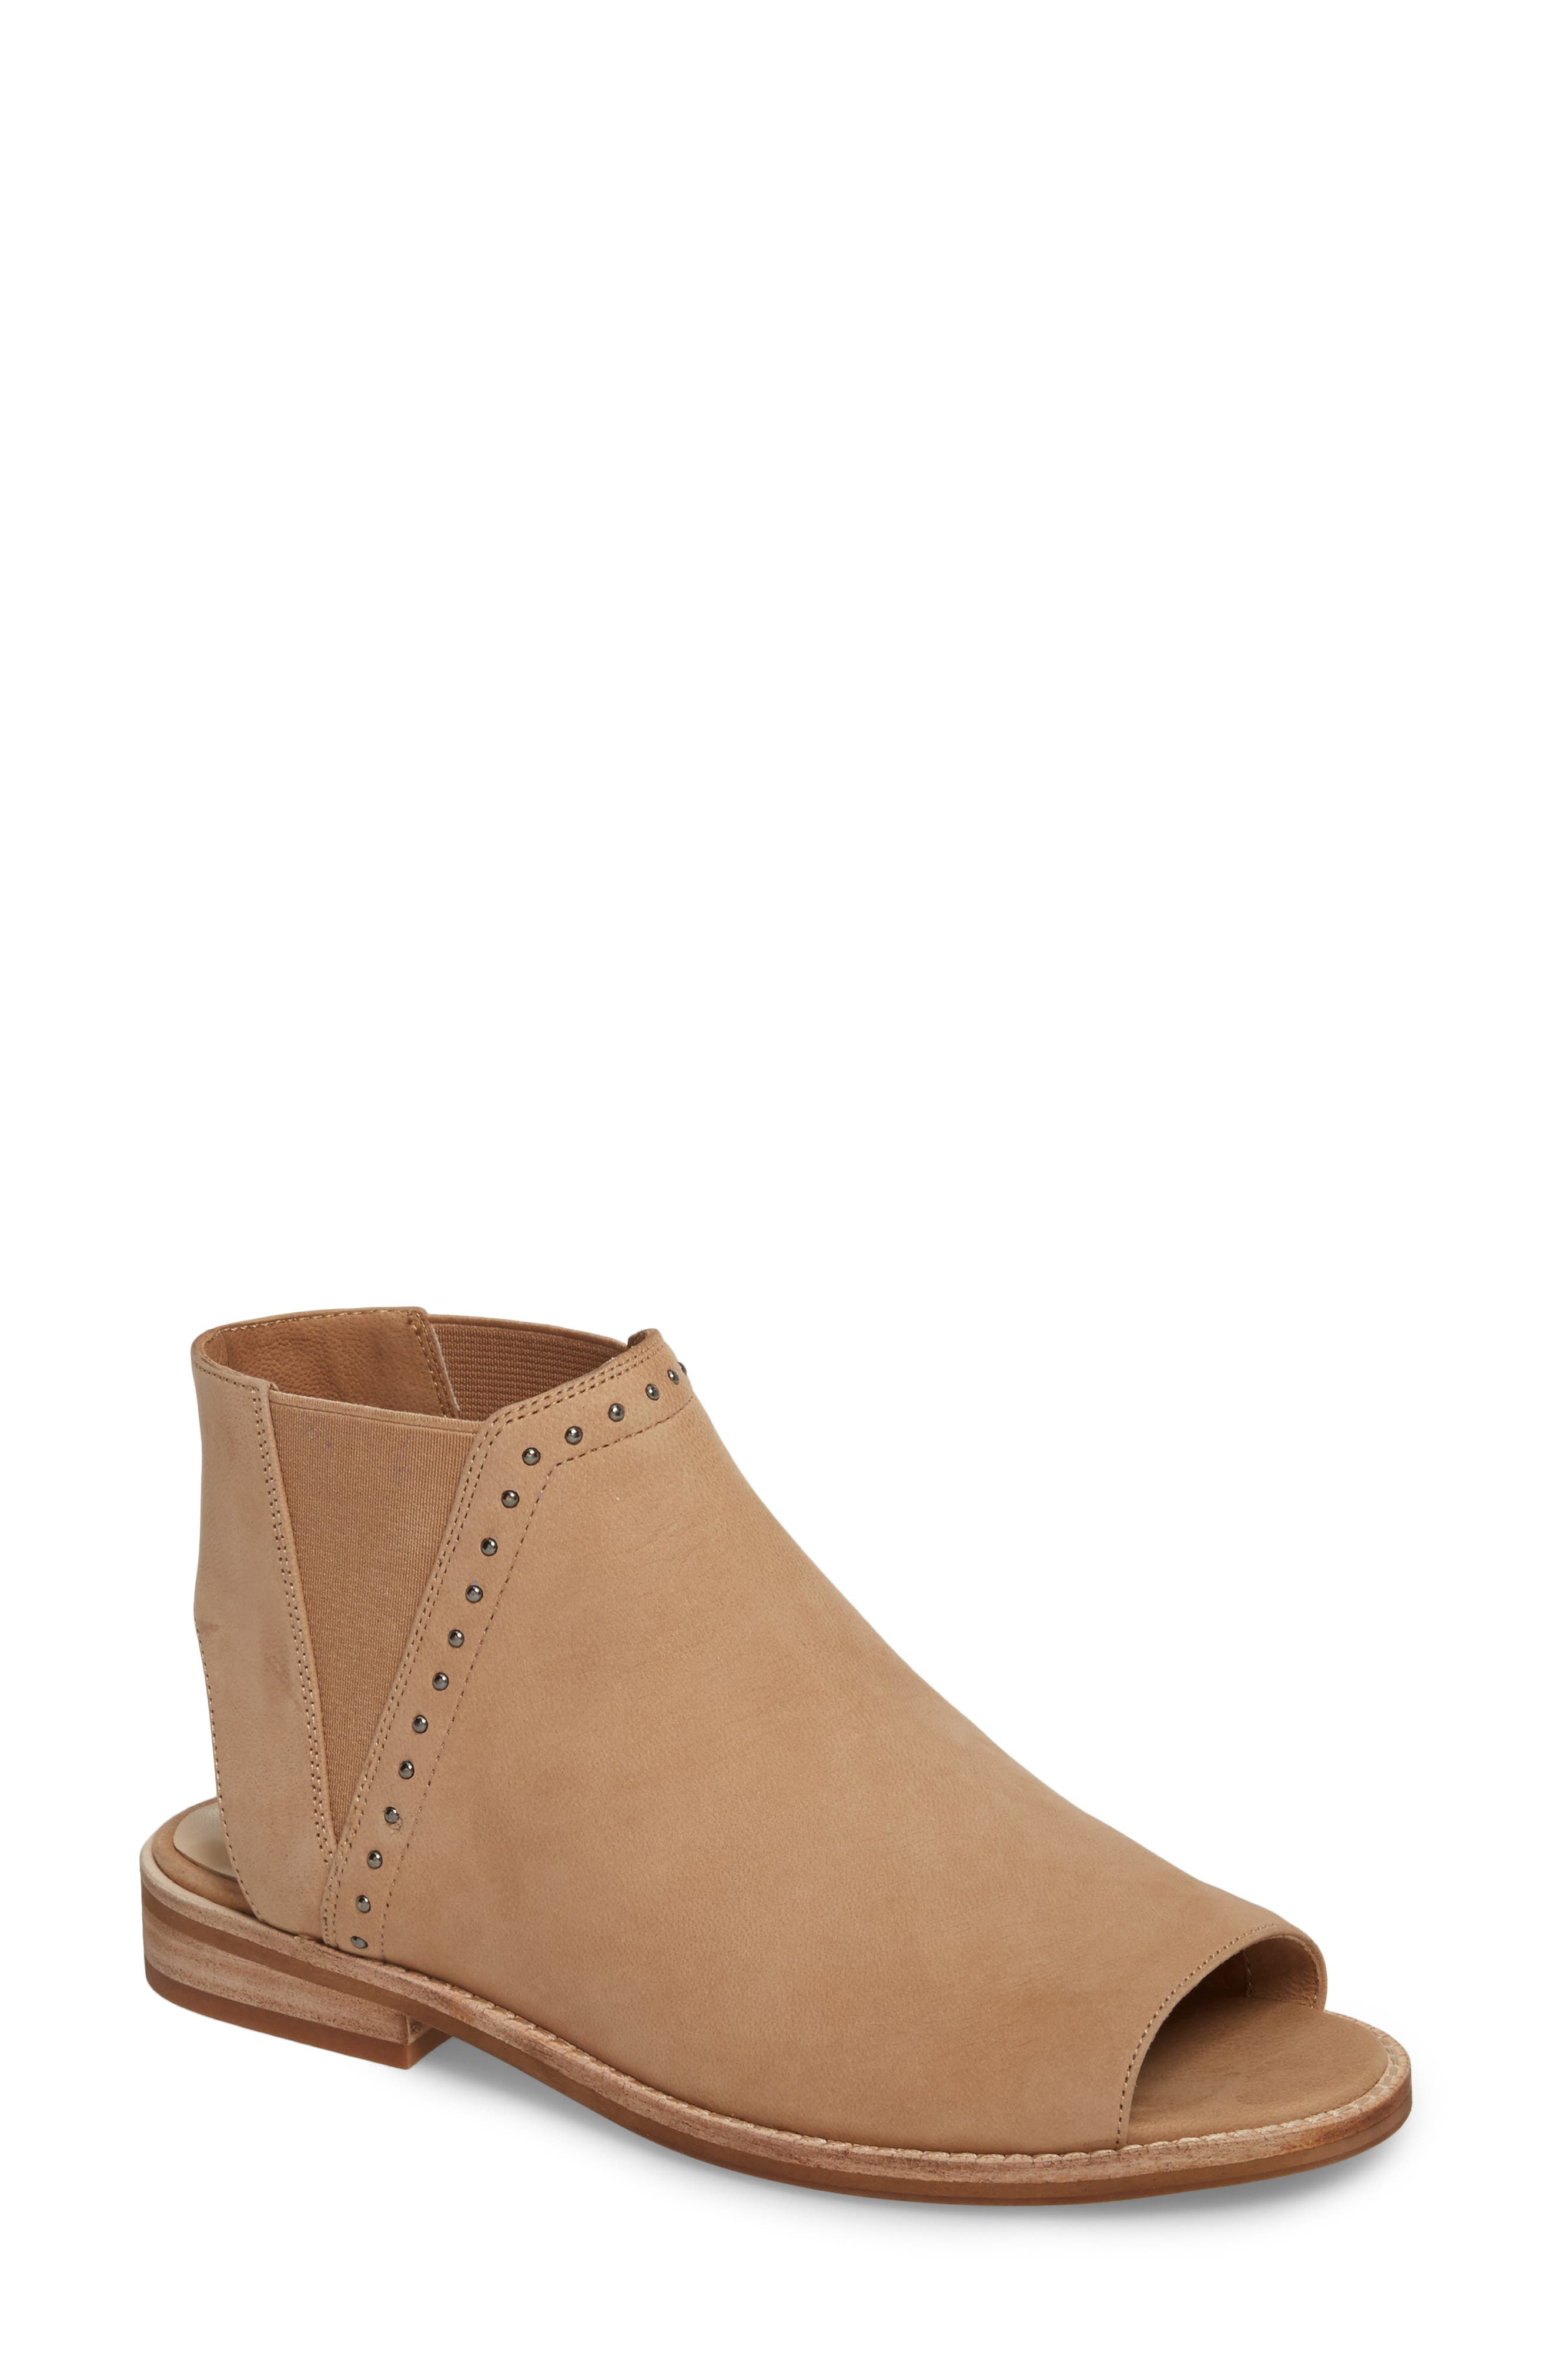 Sole Society Birty Bootie, Brown